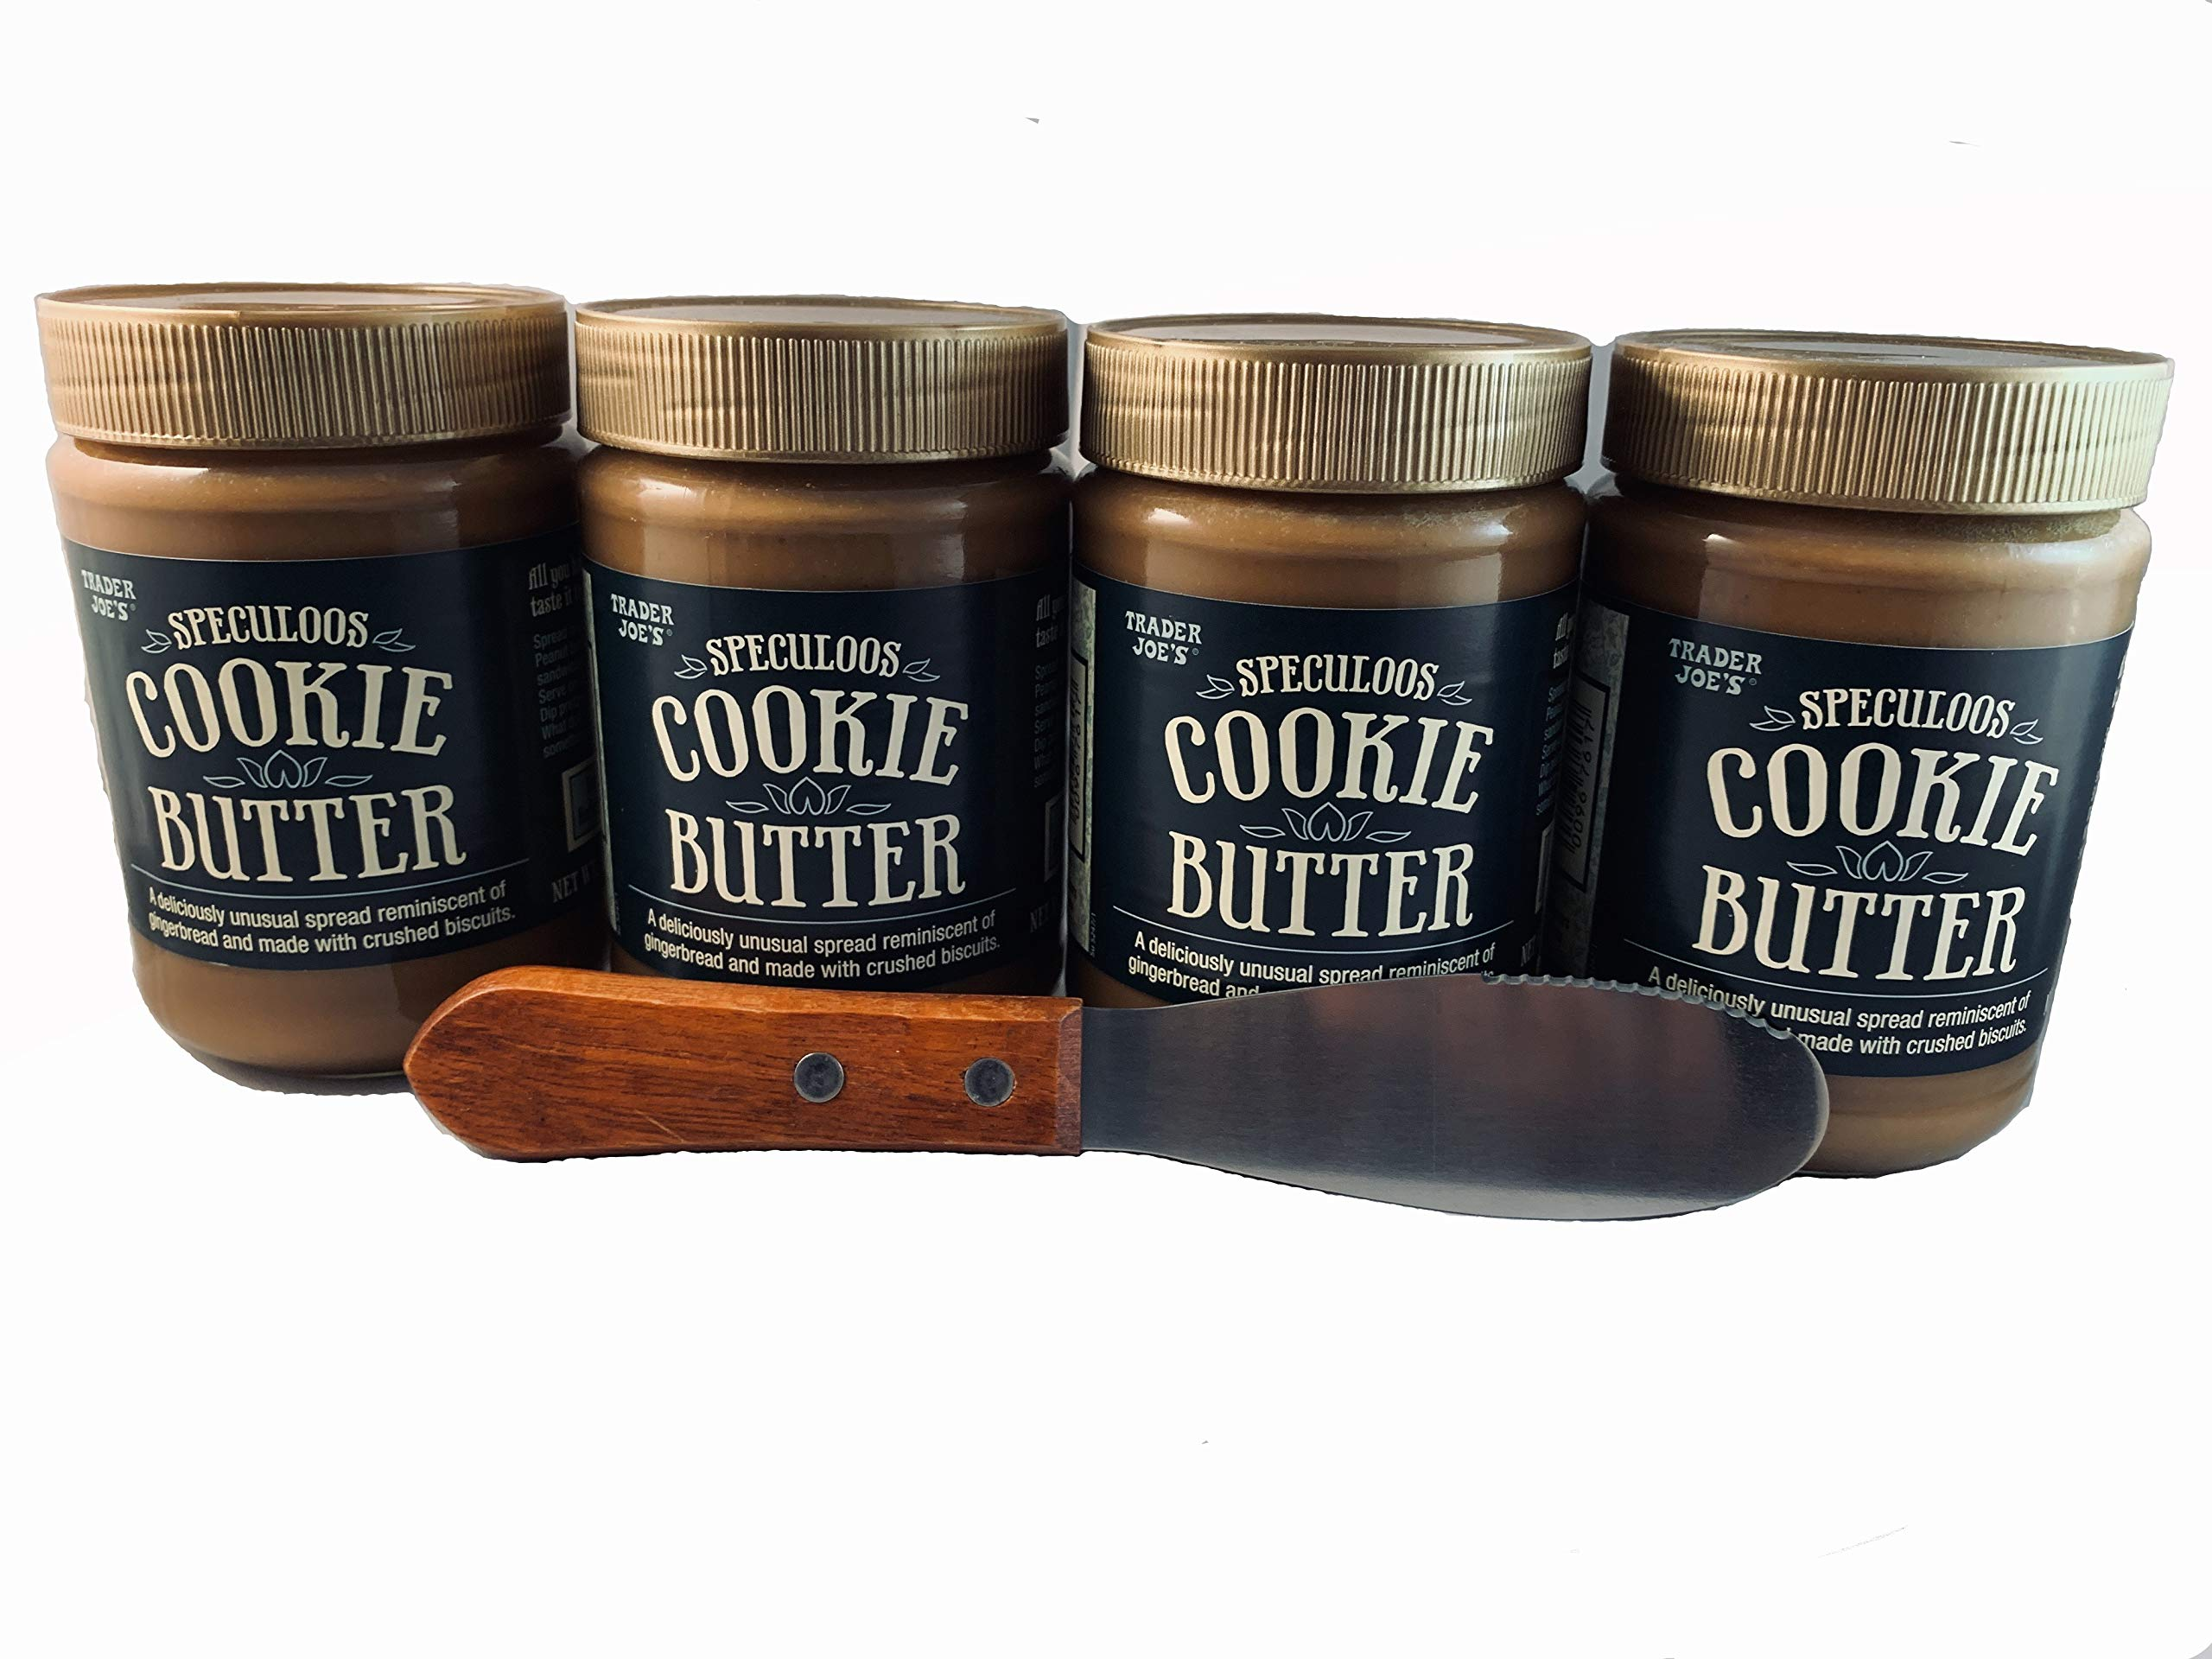 Trader Joes Speculoos Cookie Butter (Pack of 4) and Butter/Cream Cheese Spreading Knife Spreader